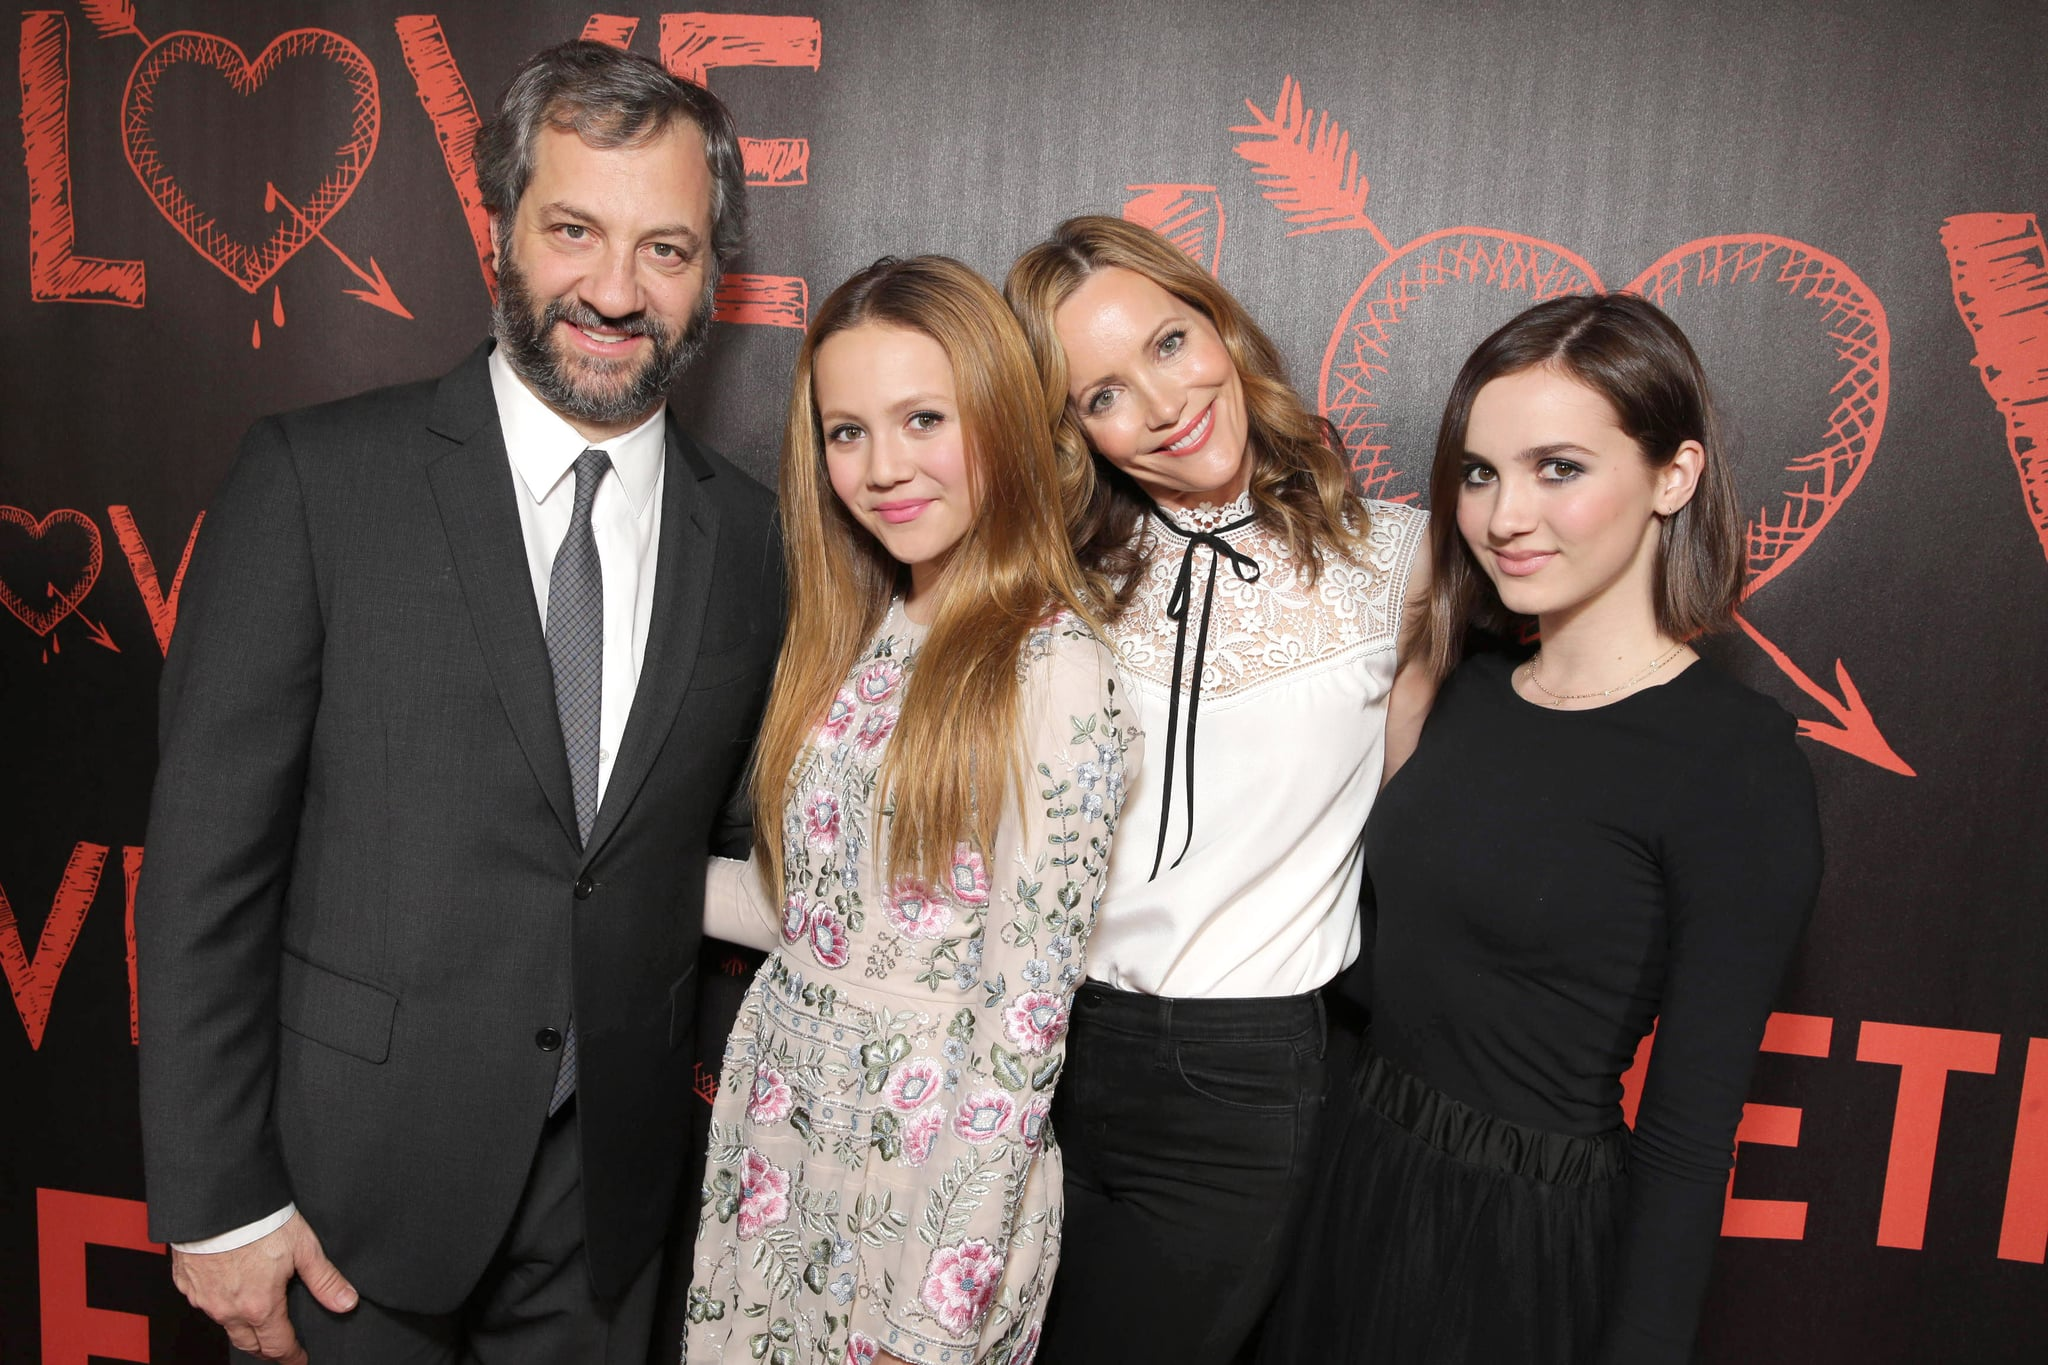 Judd Apatow With Leslie Mann and Daughters at Love Premiere ...